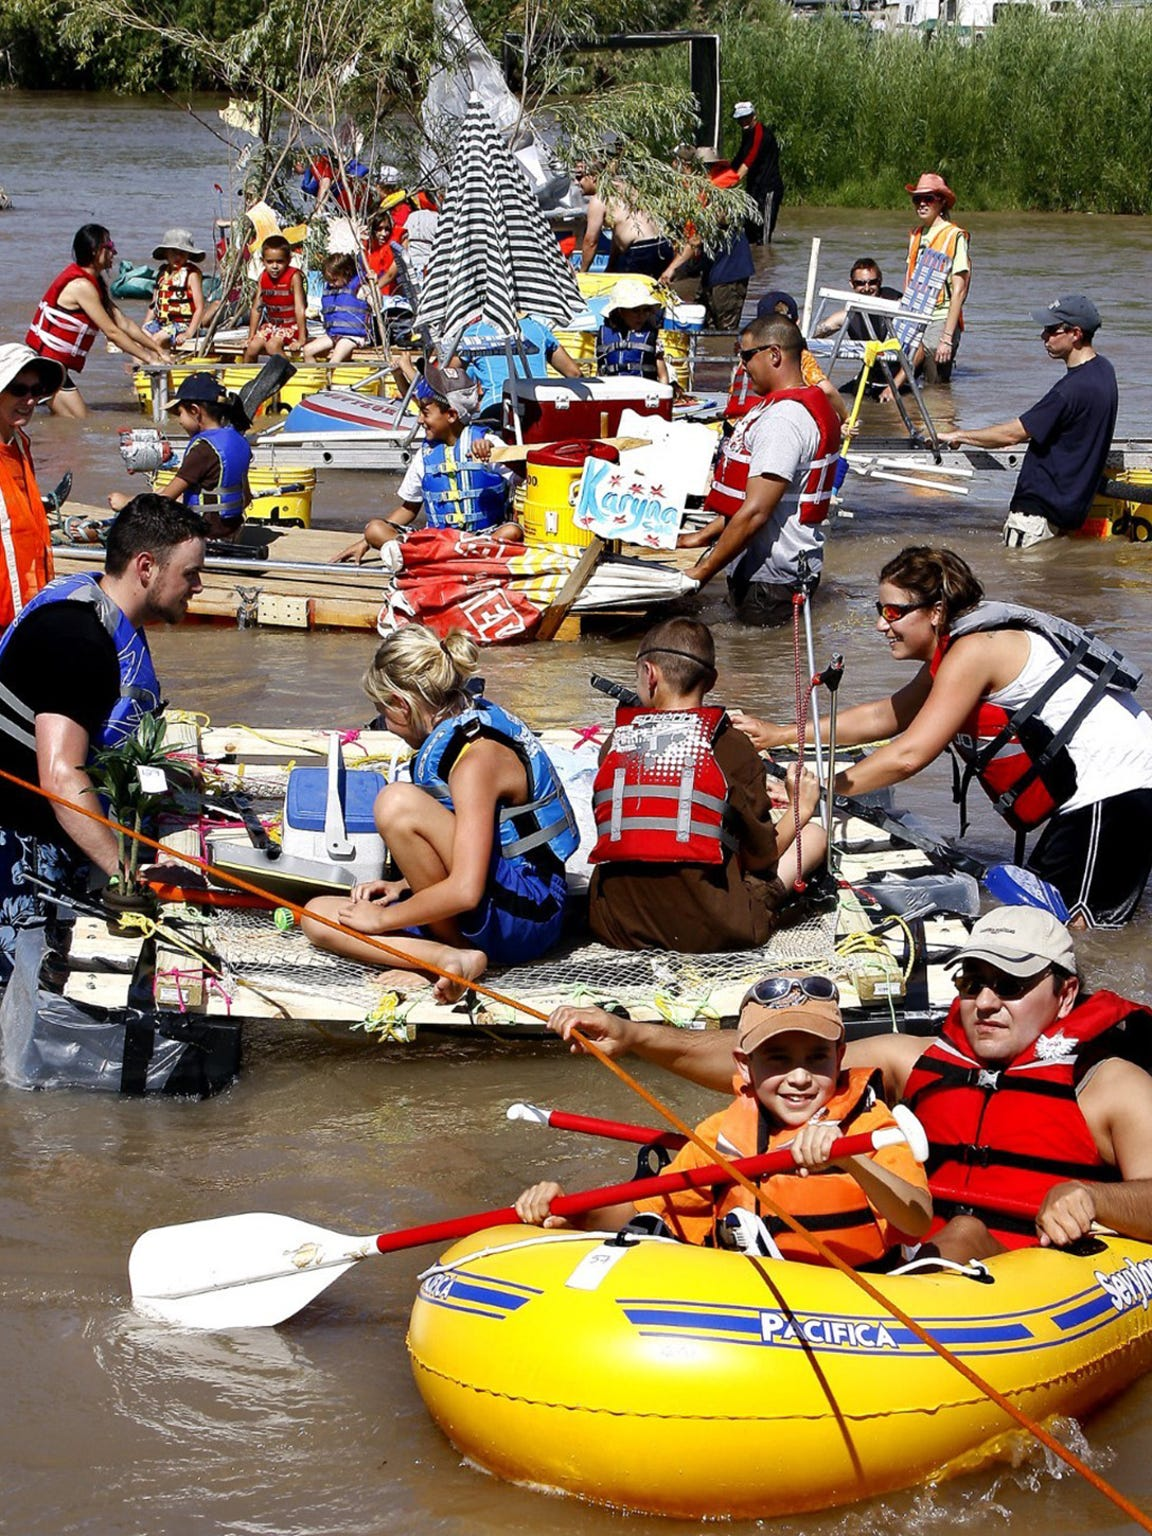 The annual Raft the Rio event returns after a year